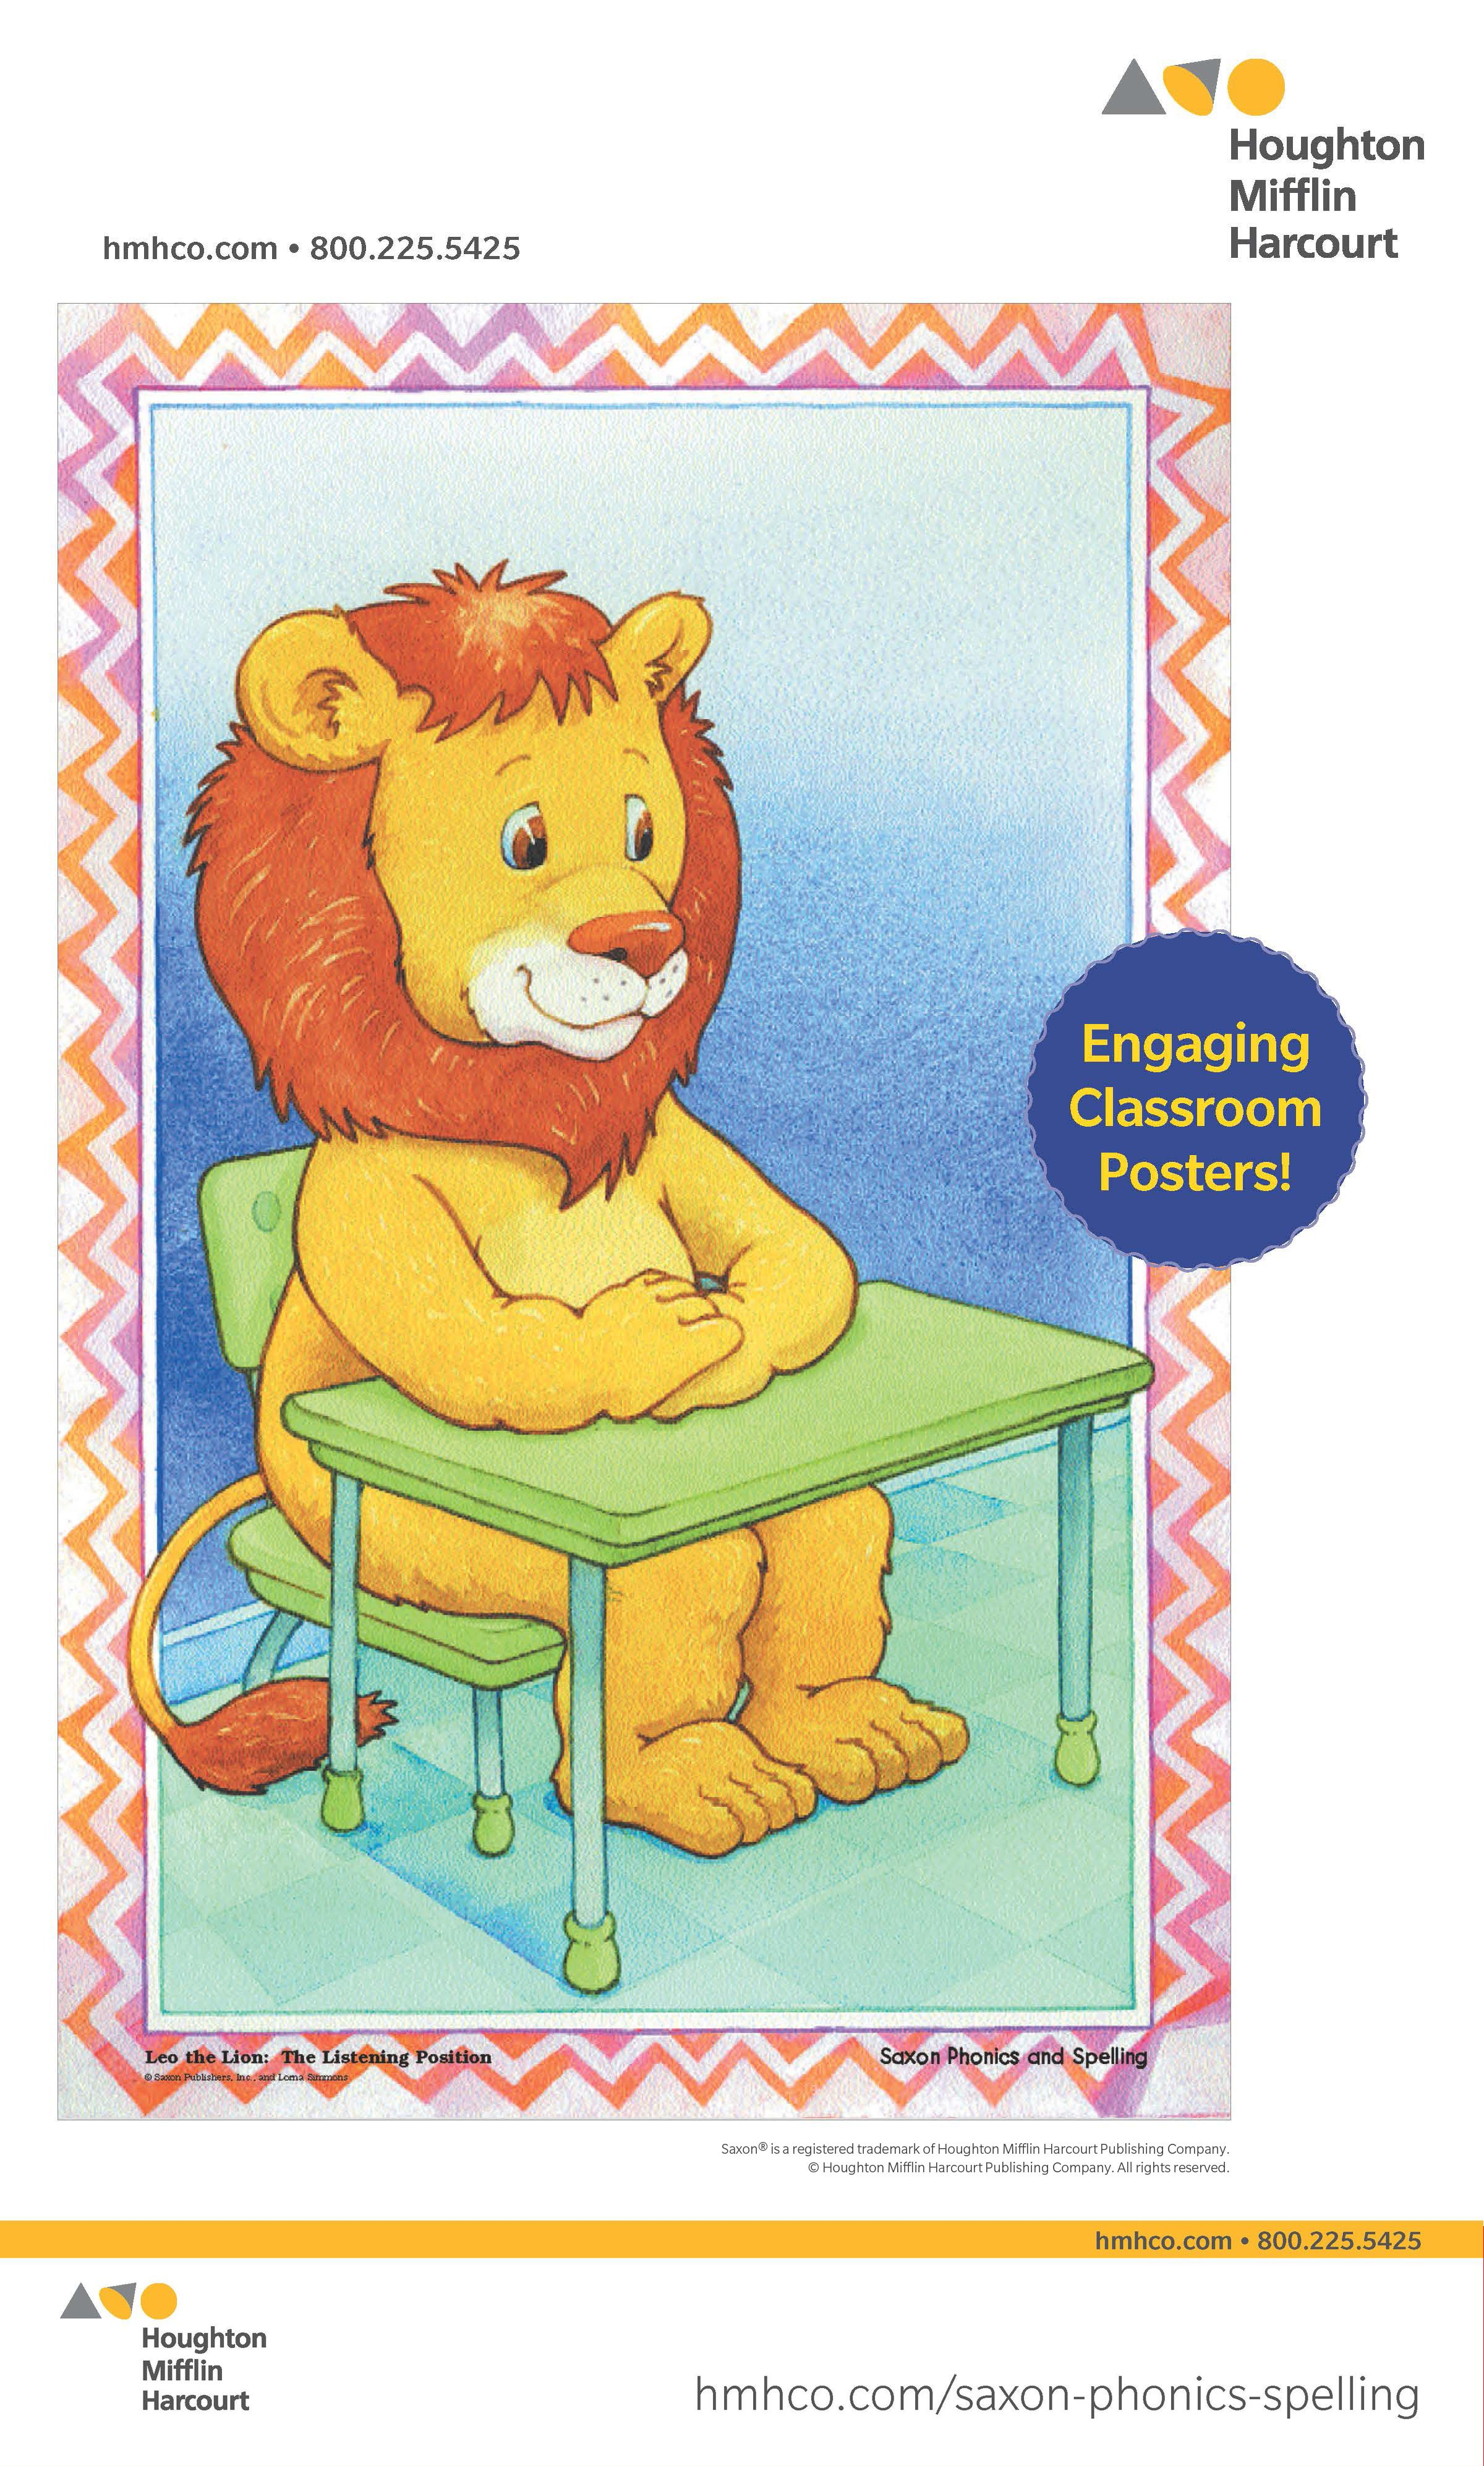 Leo the Lion shows how to use The Listening Position, with arms folded on  the desk and eyes on the teacher.